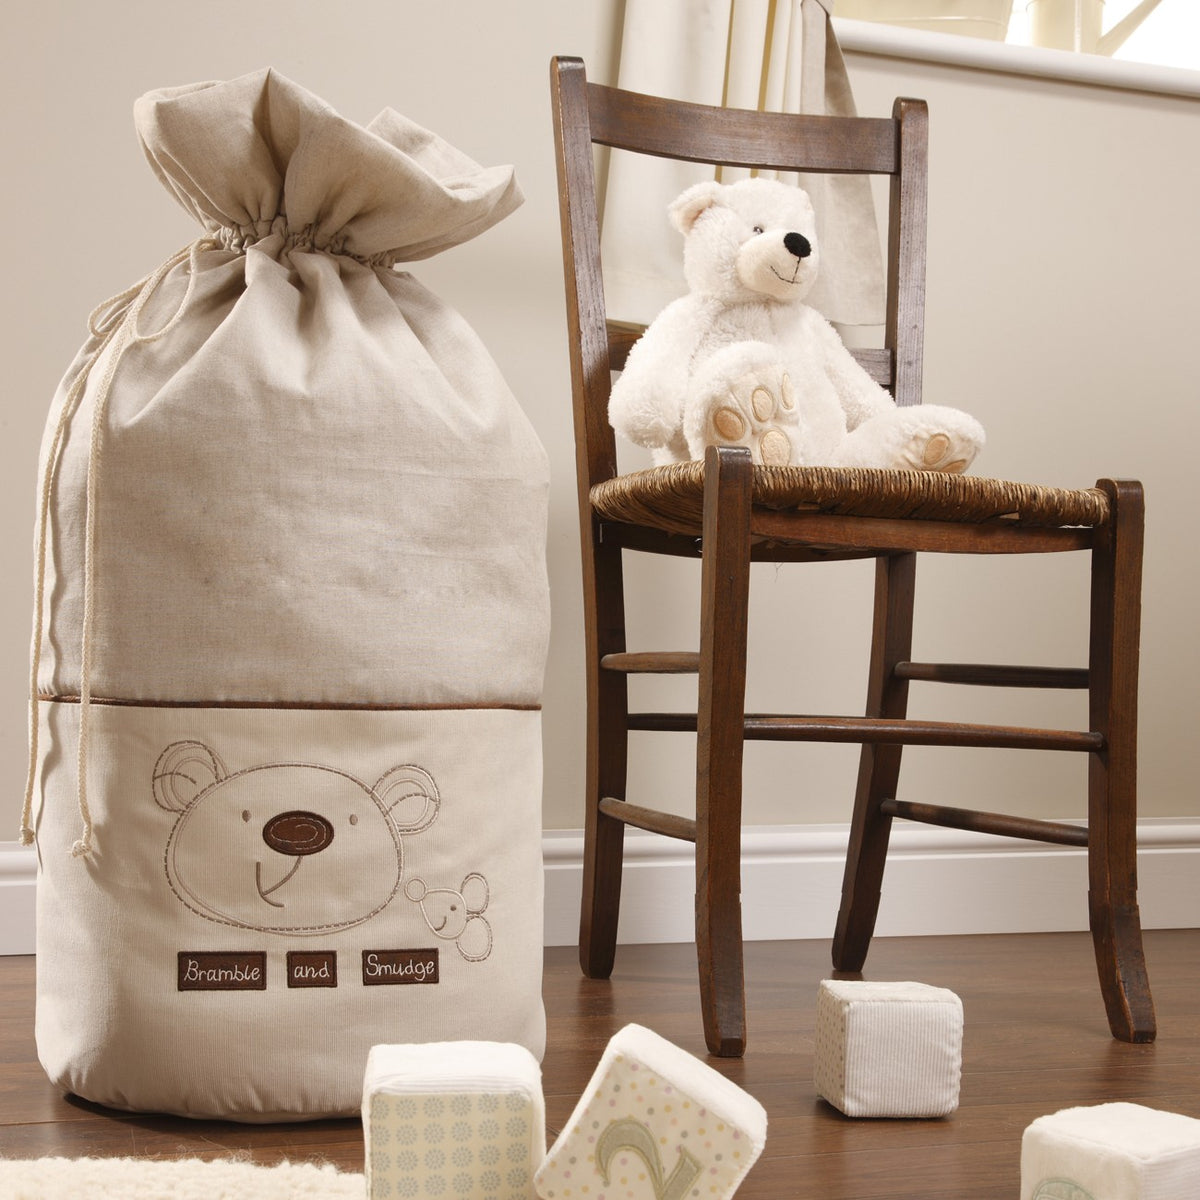 Bed-e-Byes Bramble and Smudge Laundry Bag